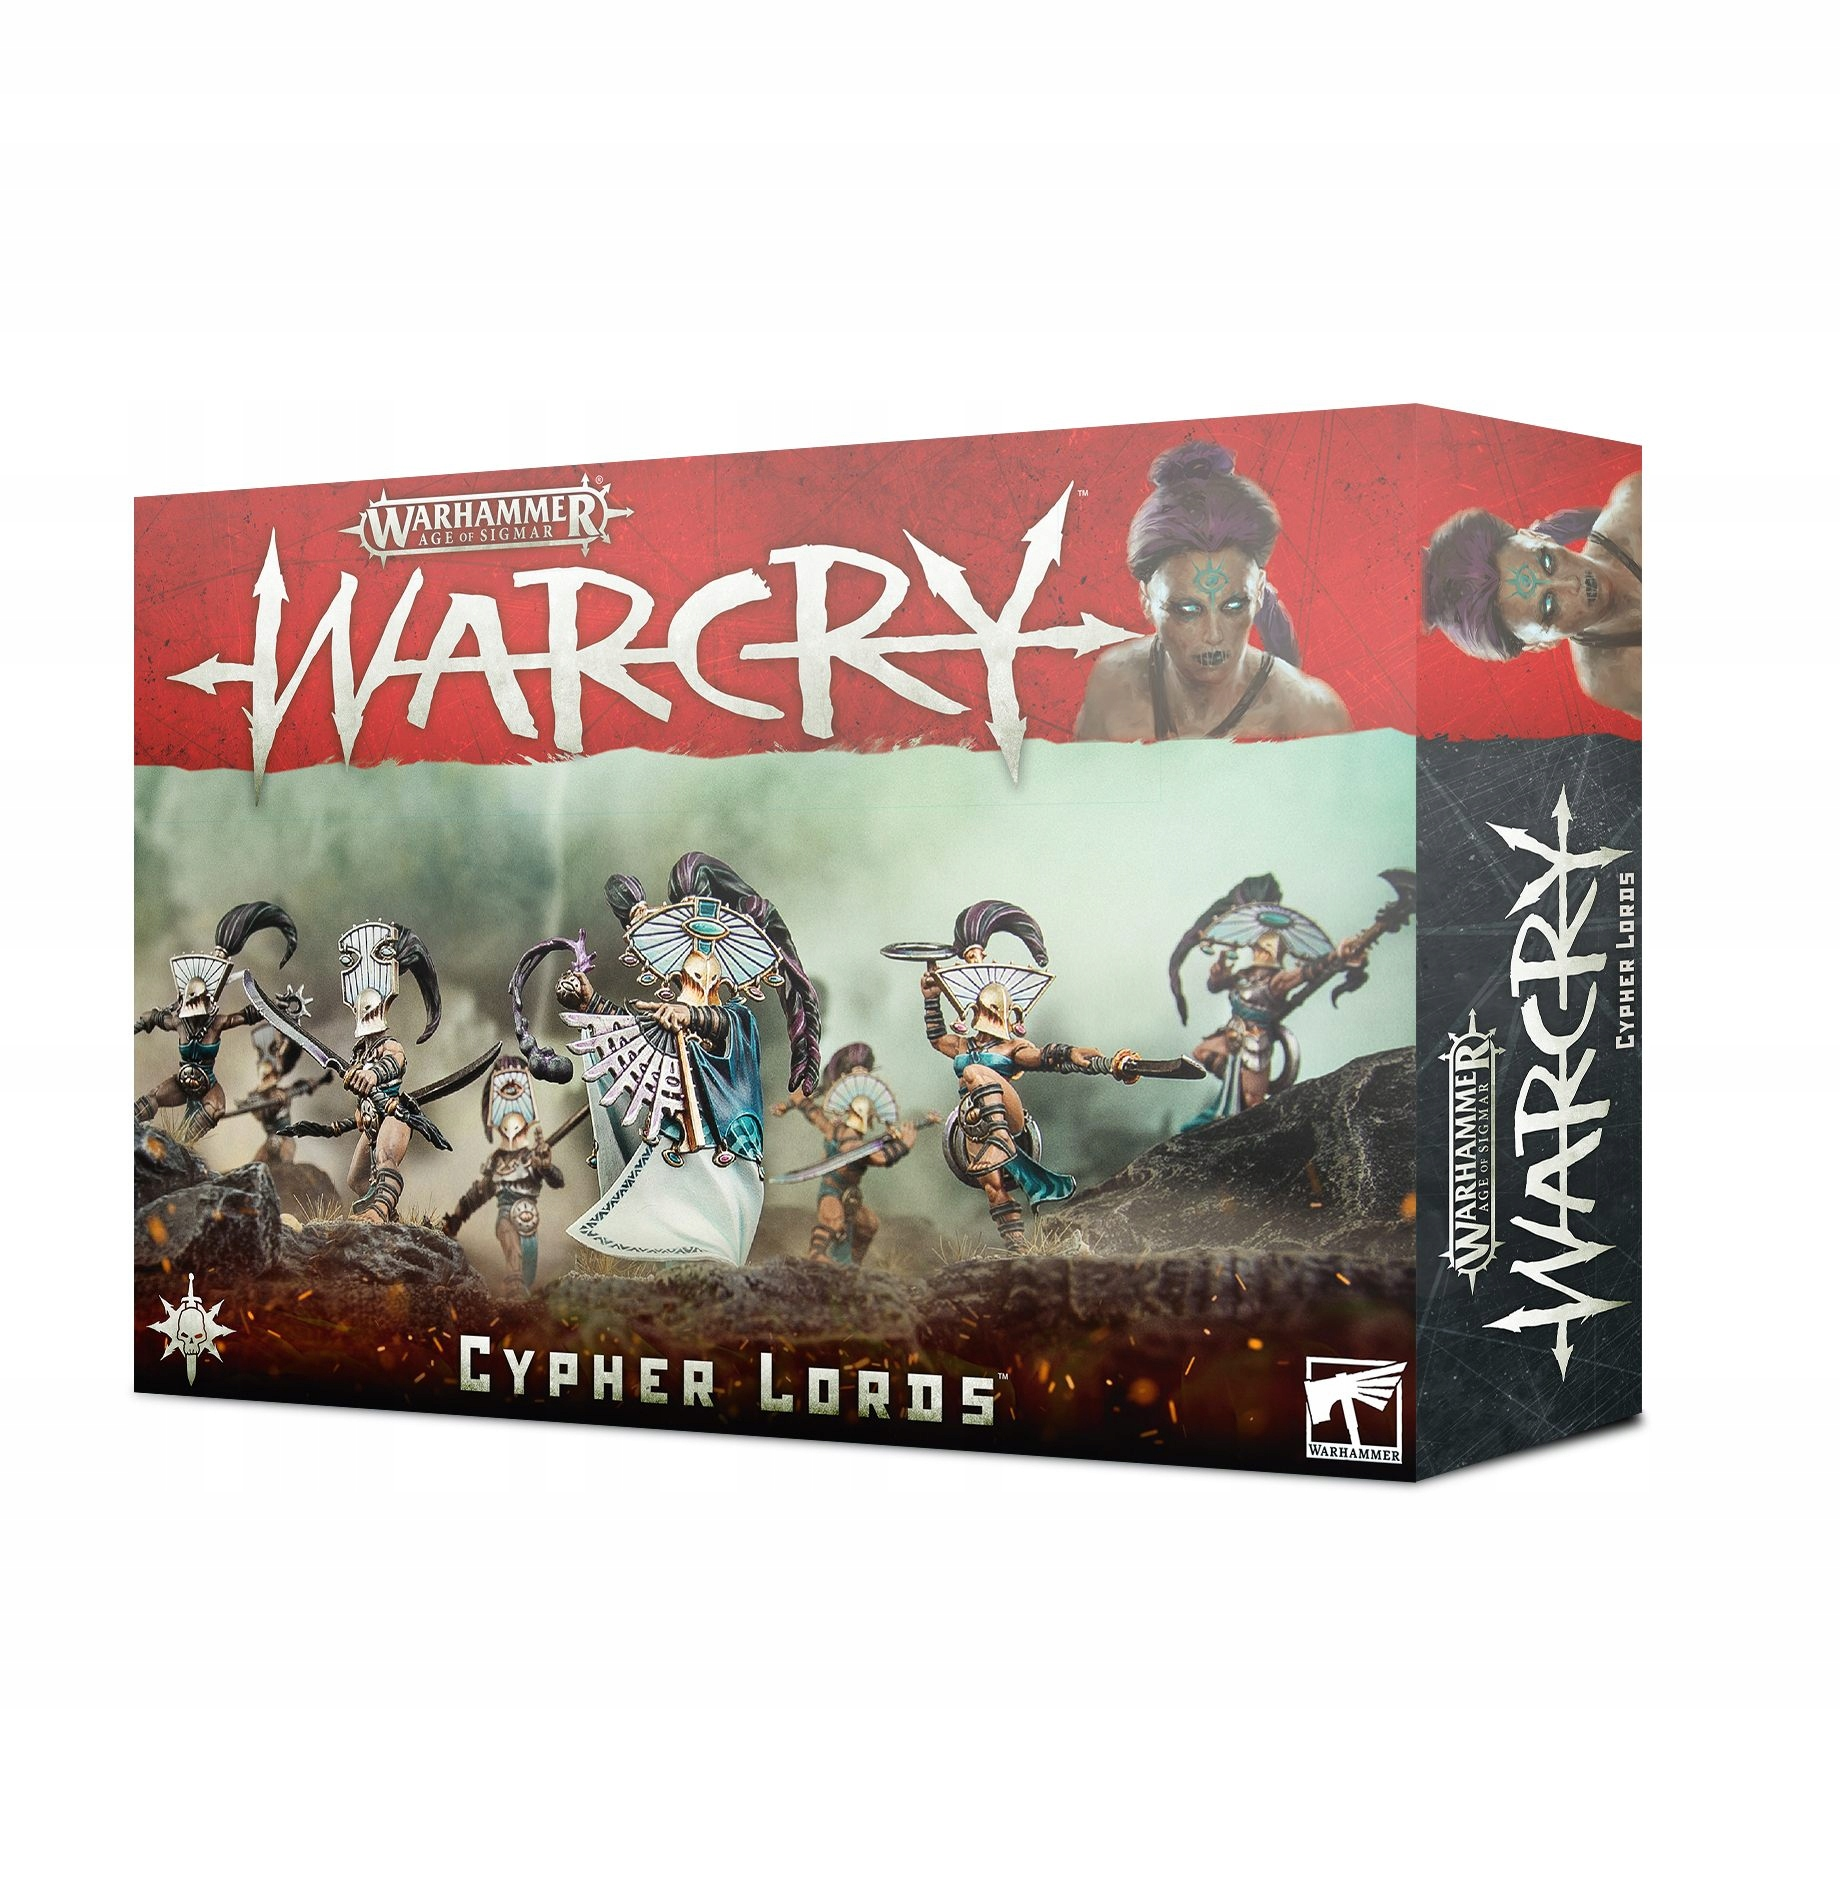 Warcry - Cypher Lords - New Box, vo filme